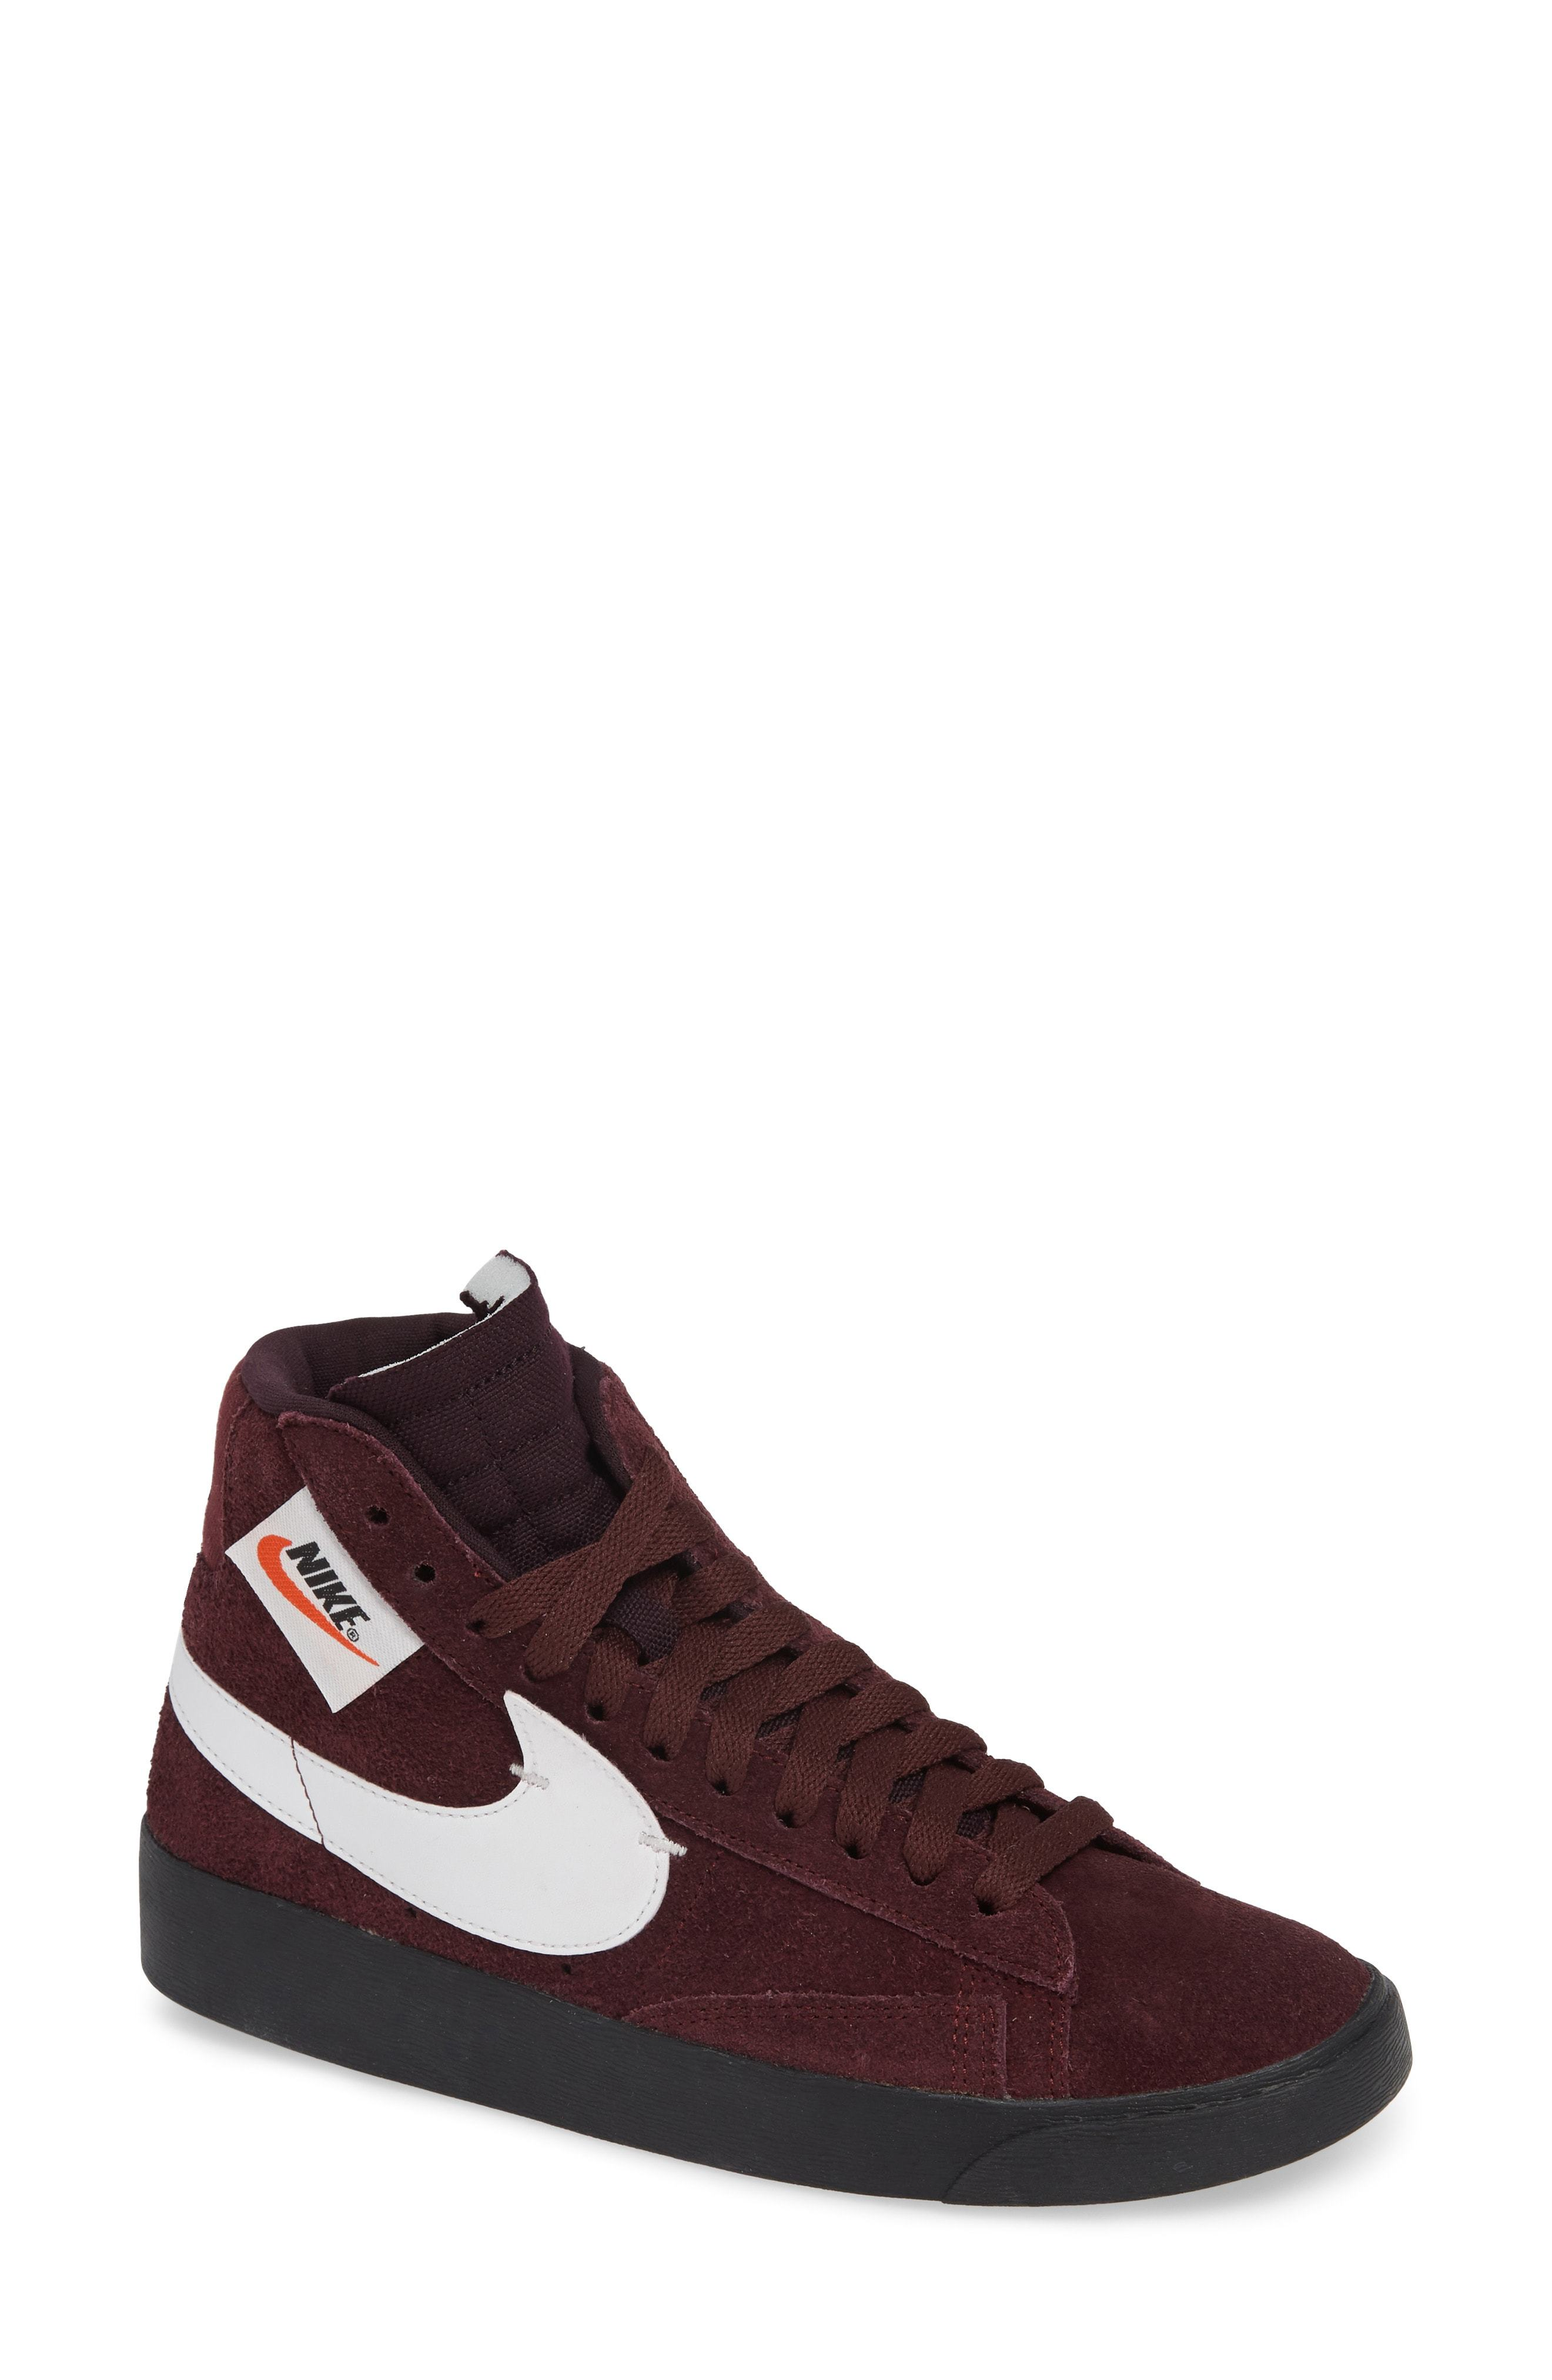 new arrival 63382 a9a4a ... Burgundy Suede High Top Sneakers Nike Blazer Mid Rebel Sneaker